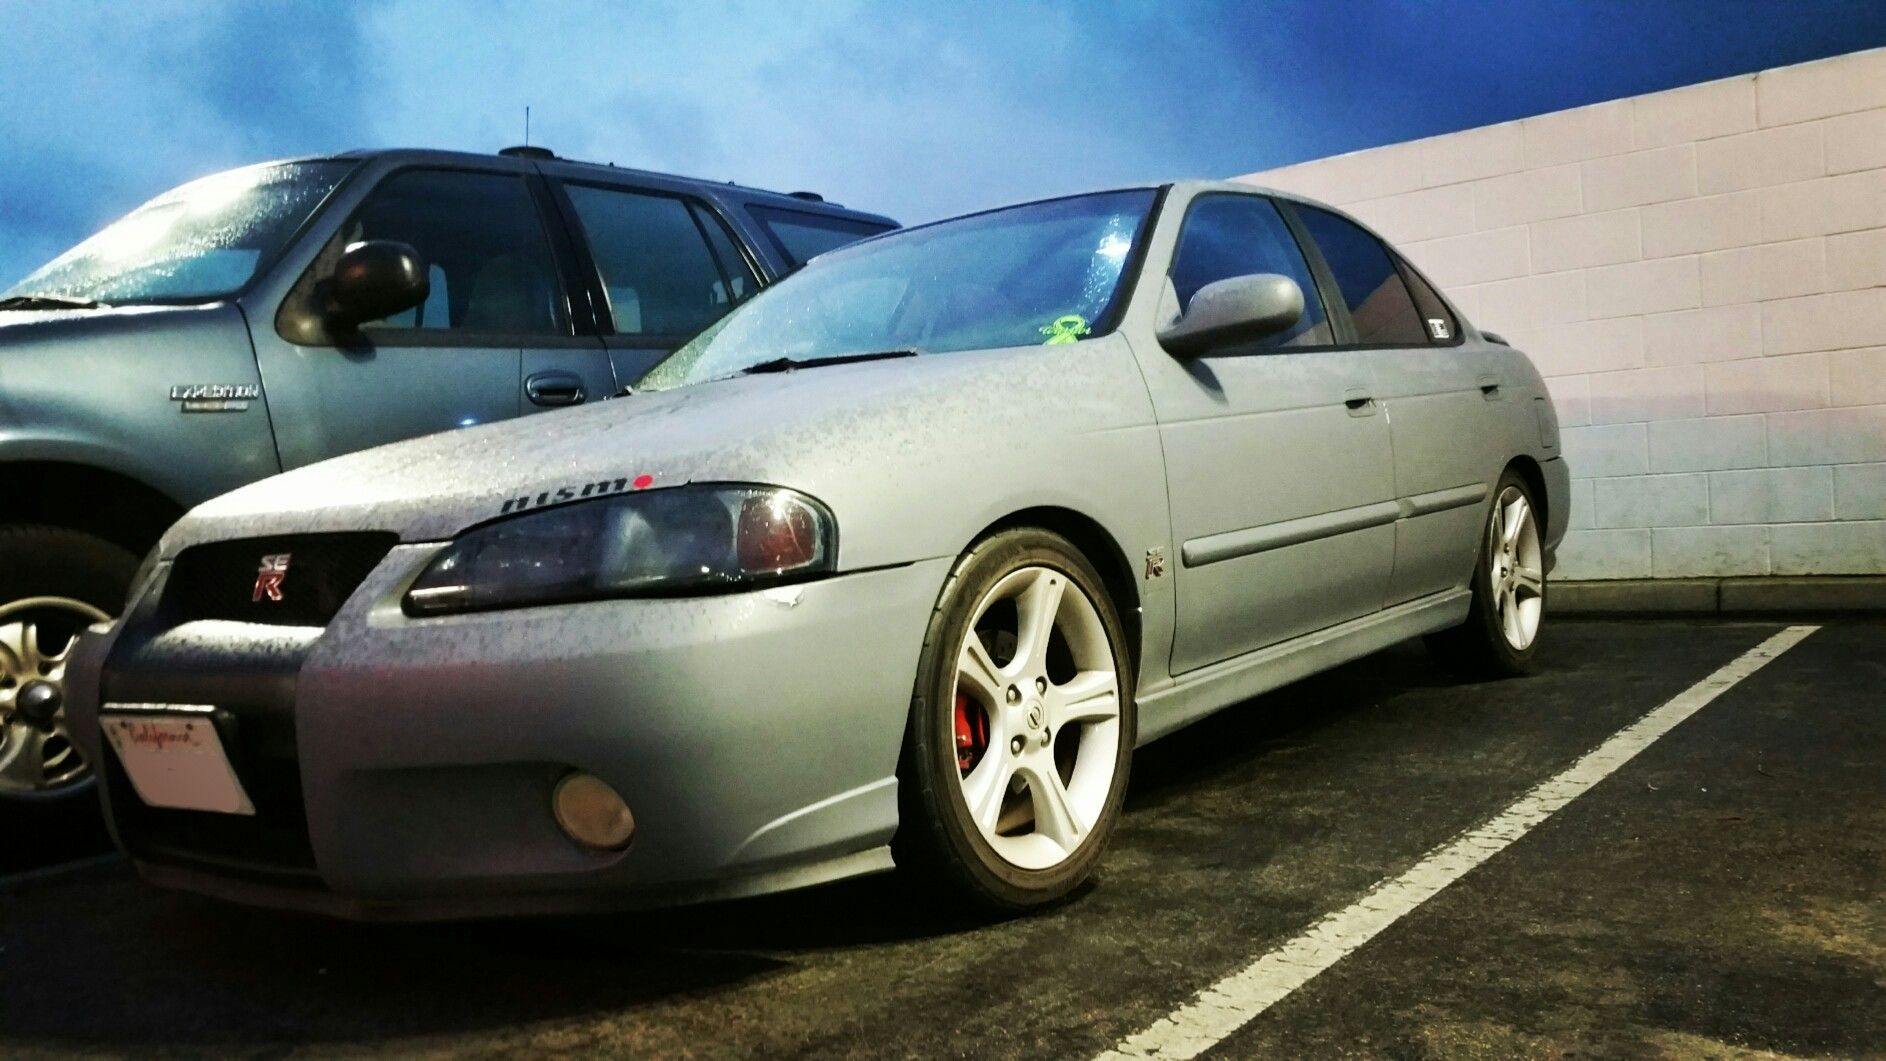 02 Nissan Sentra SER Spec V Import Cars Pinterest